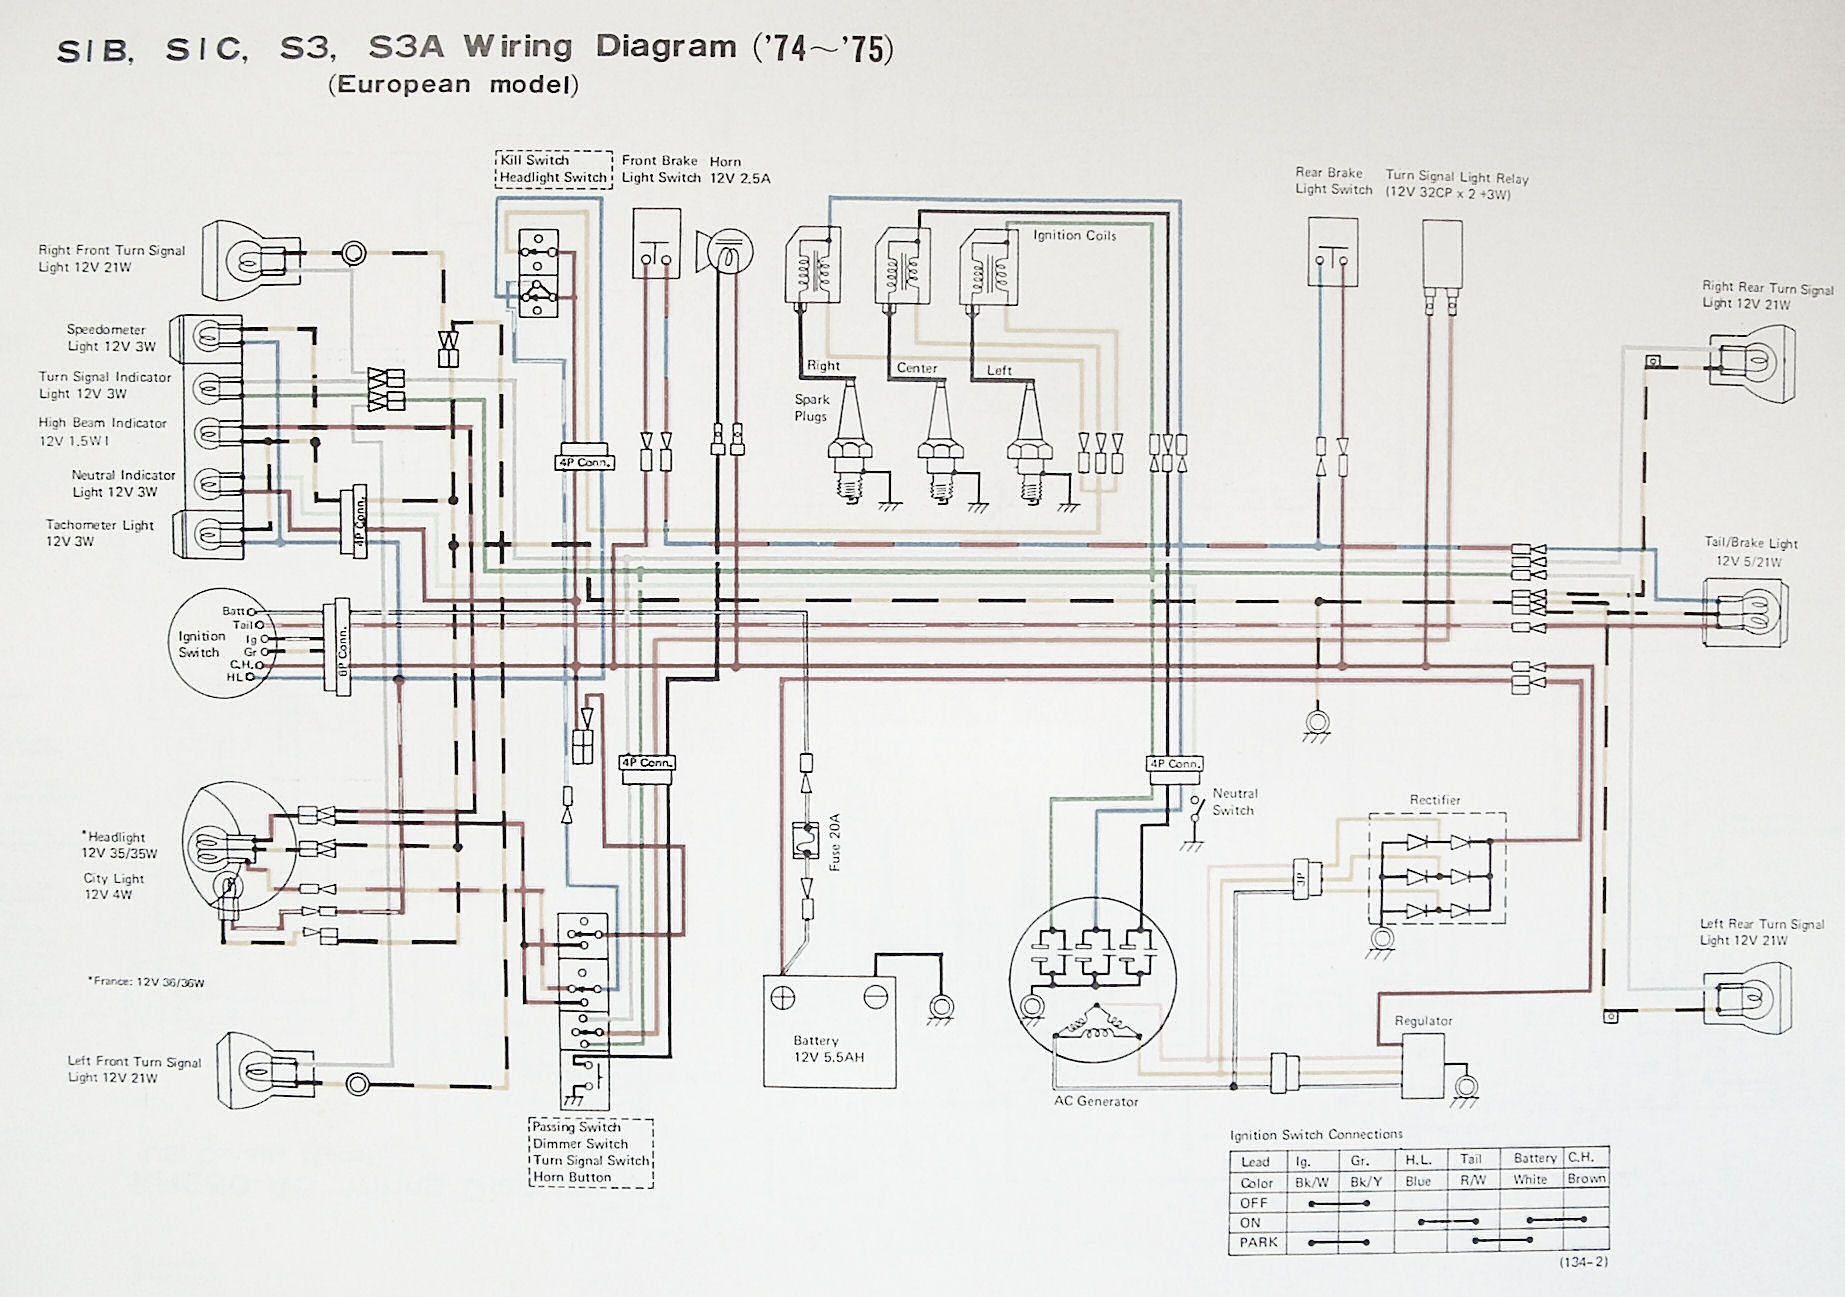 kawasaki wiring diagrams kawasaki bayou 220 electrical diagram images kawasaki gt550 wiring diagram kawasaki wiring diagrams examples and